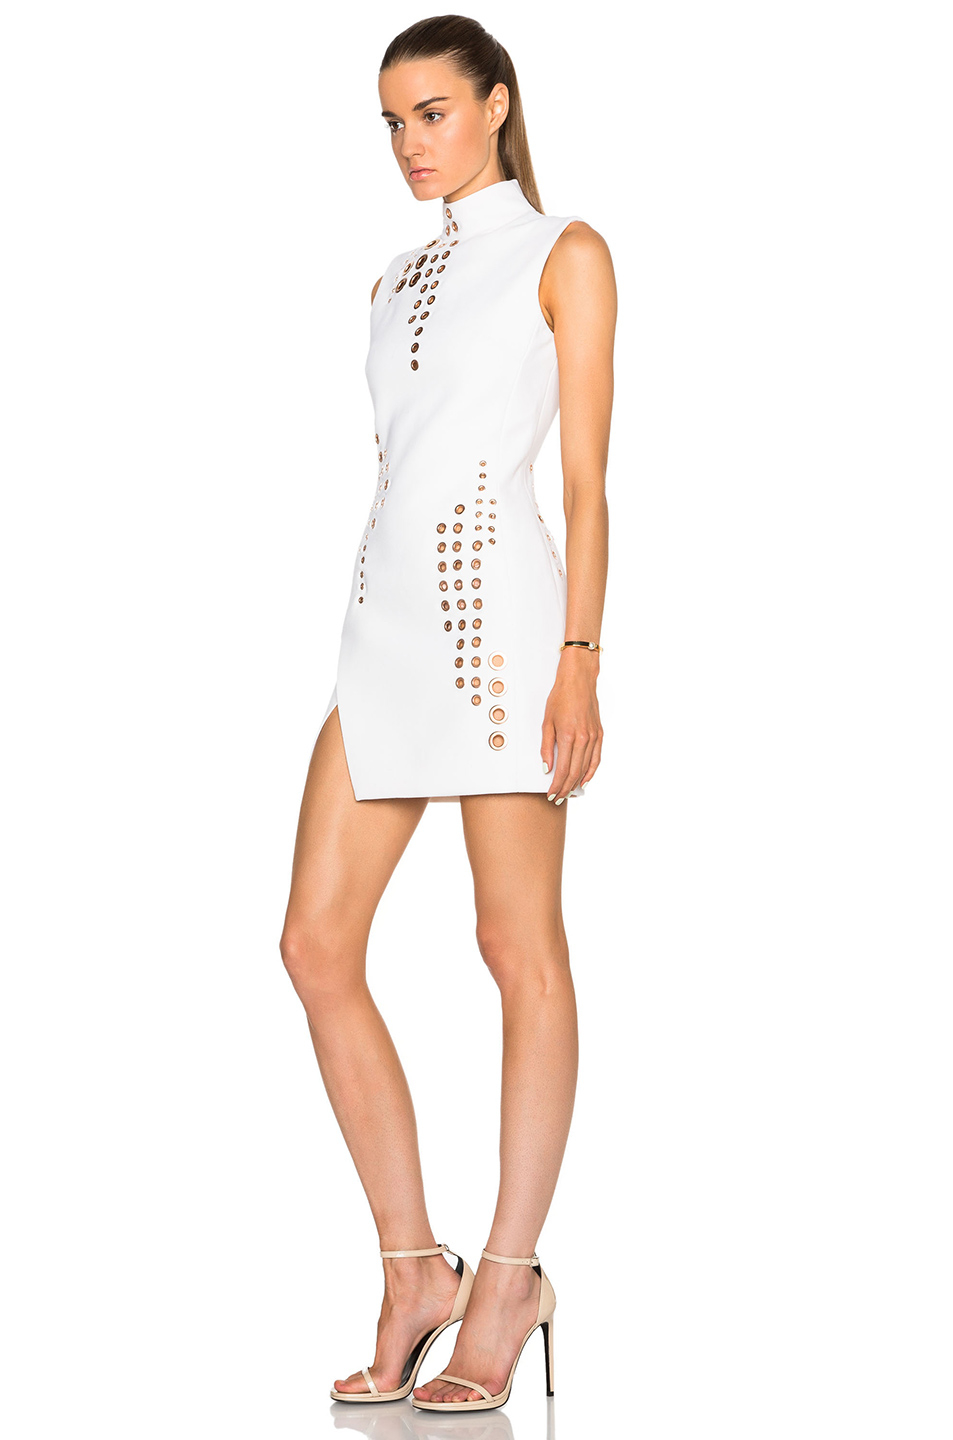 White dresses with grommets